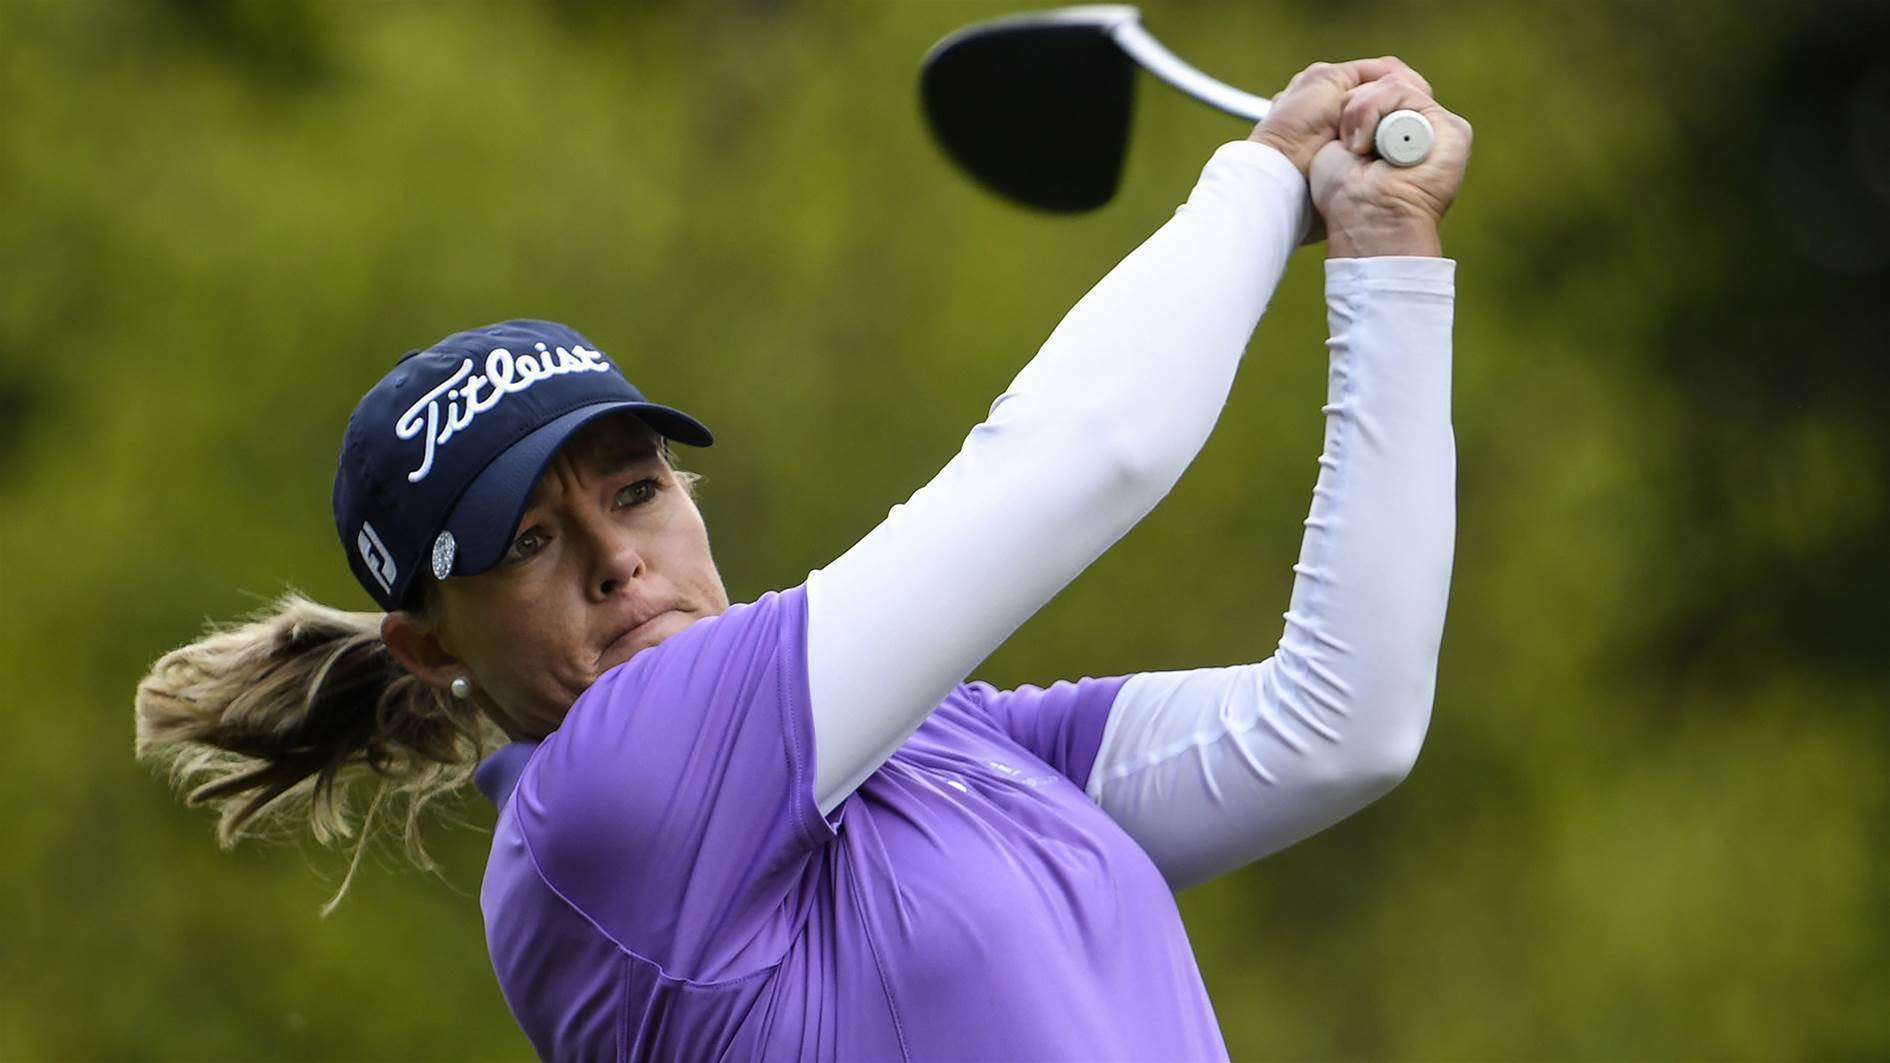 LPGA: Kirk falls just short of maiden major at Evian